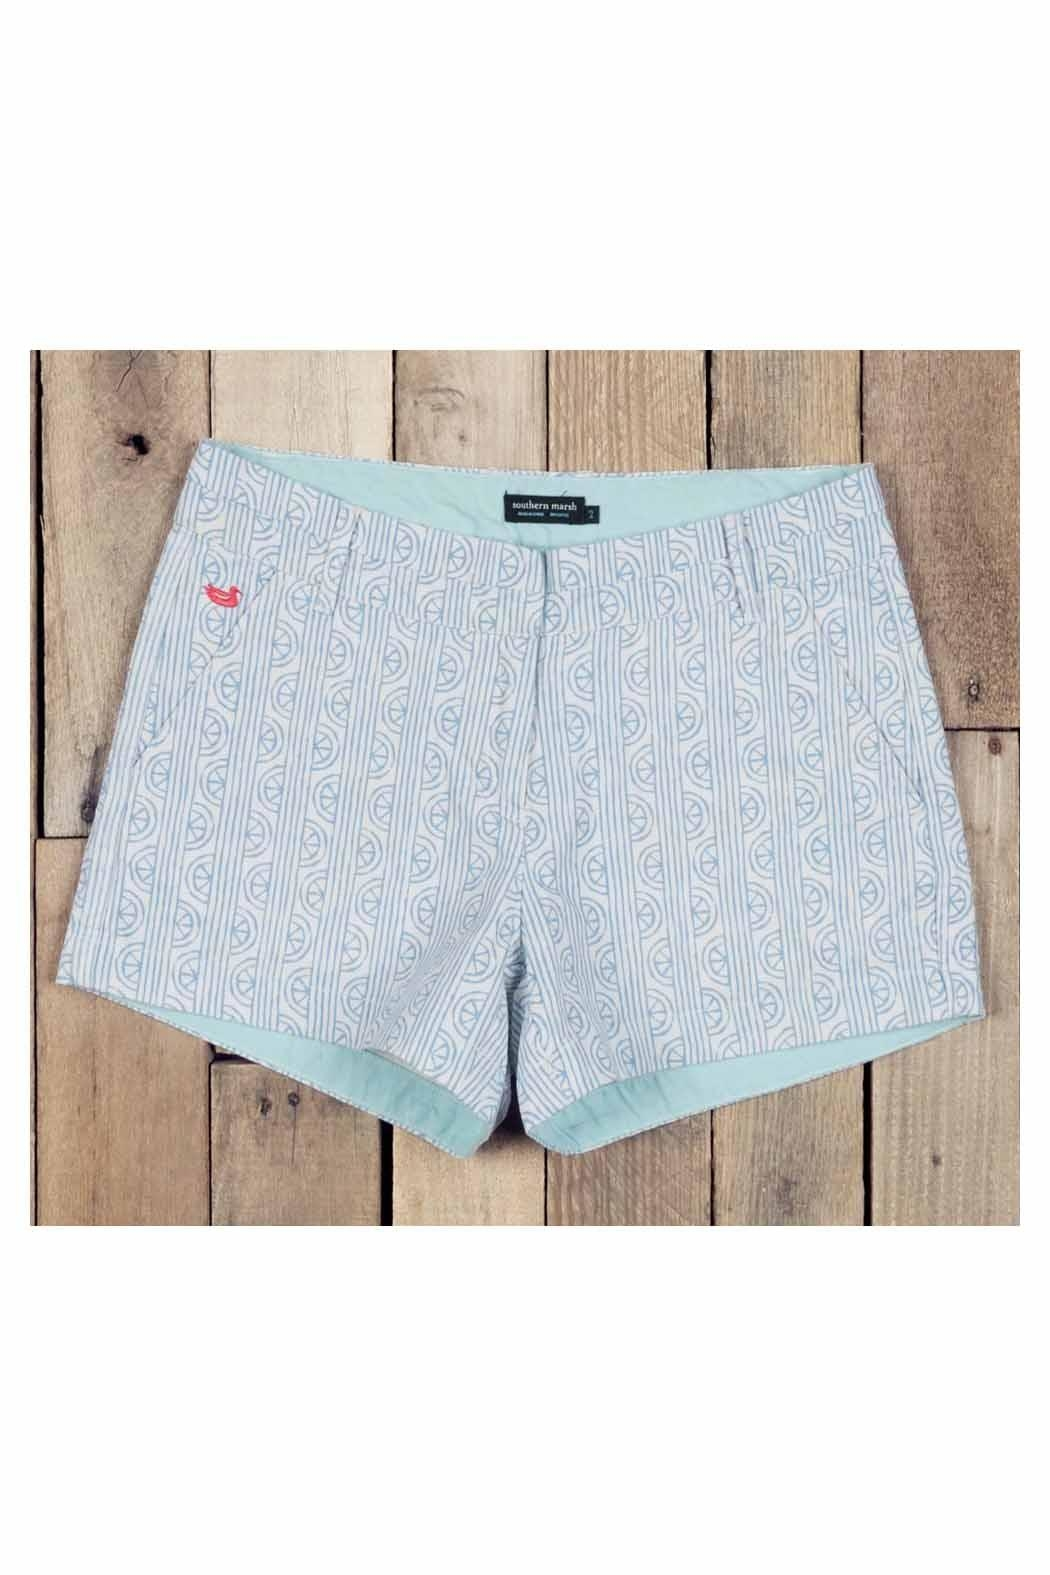 Southern Marsh  Teal Patterned Shorts - Front Full Image